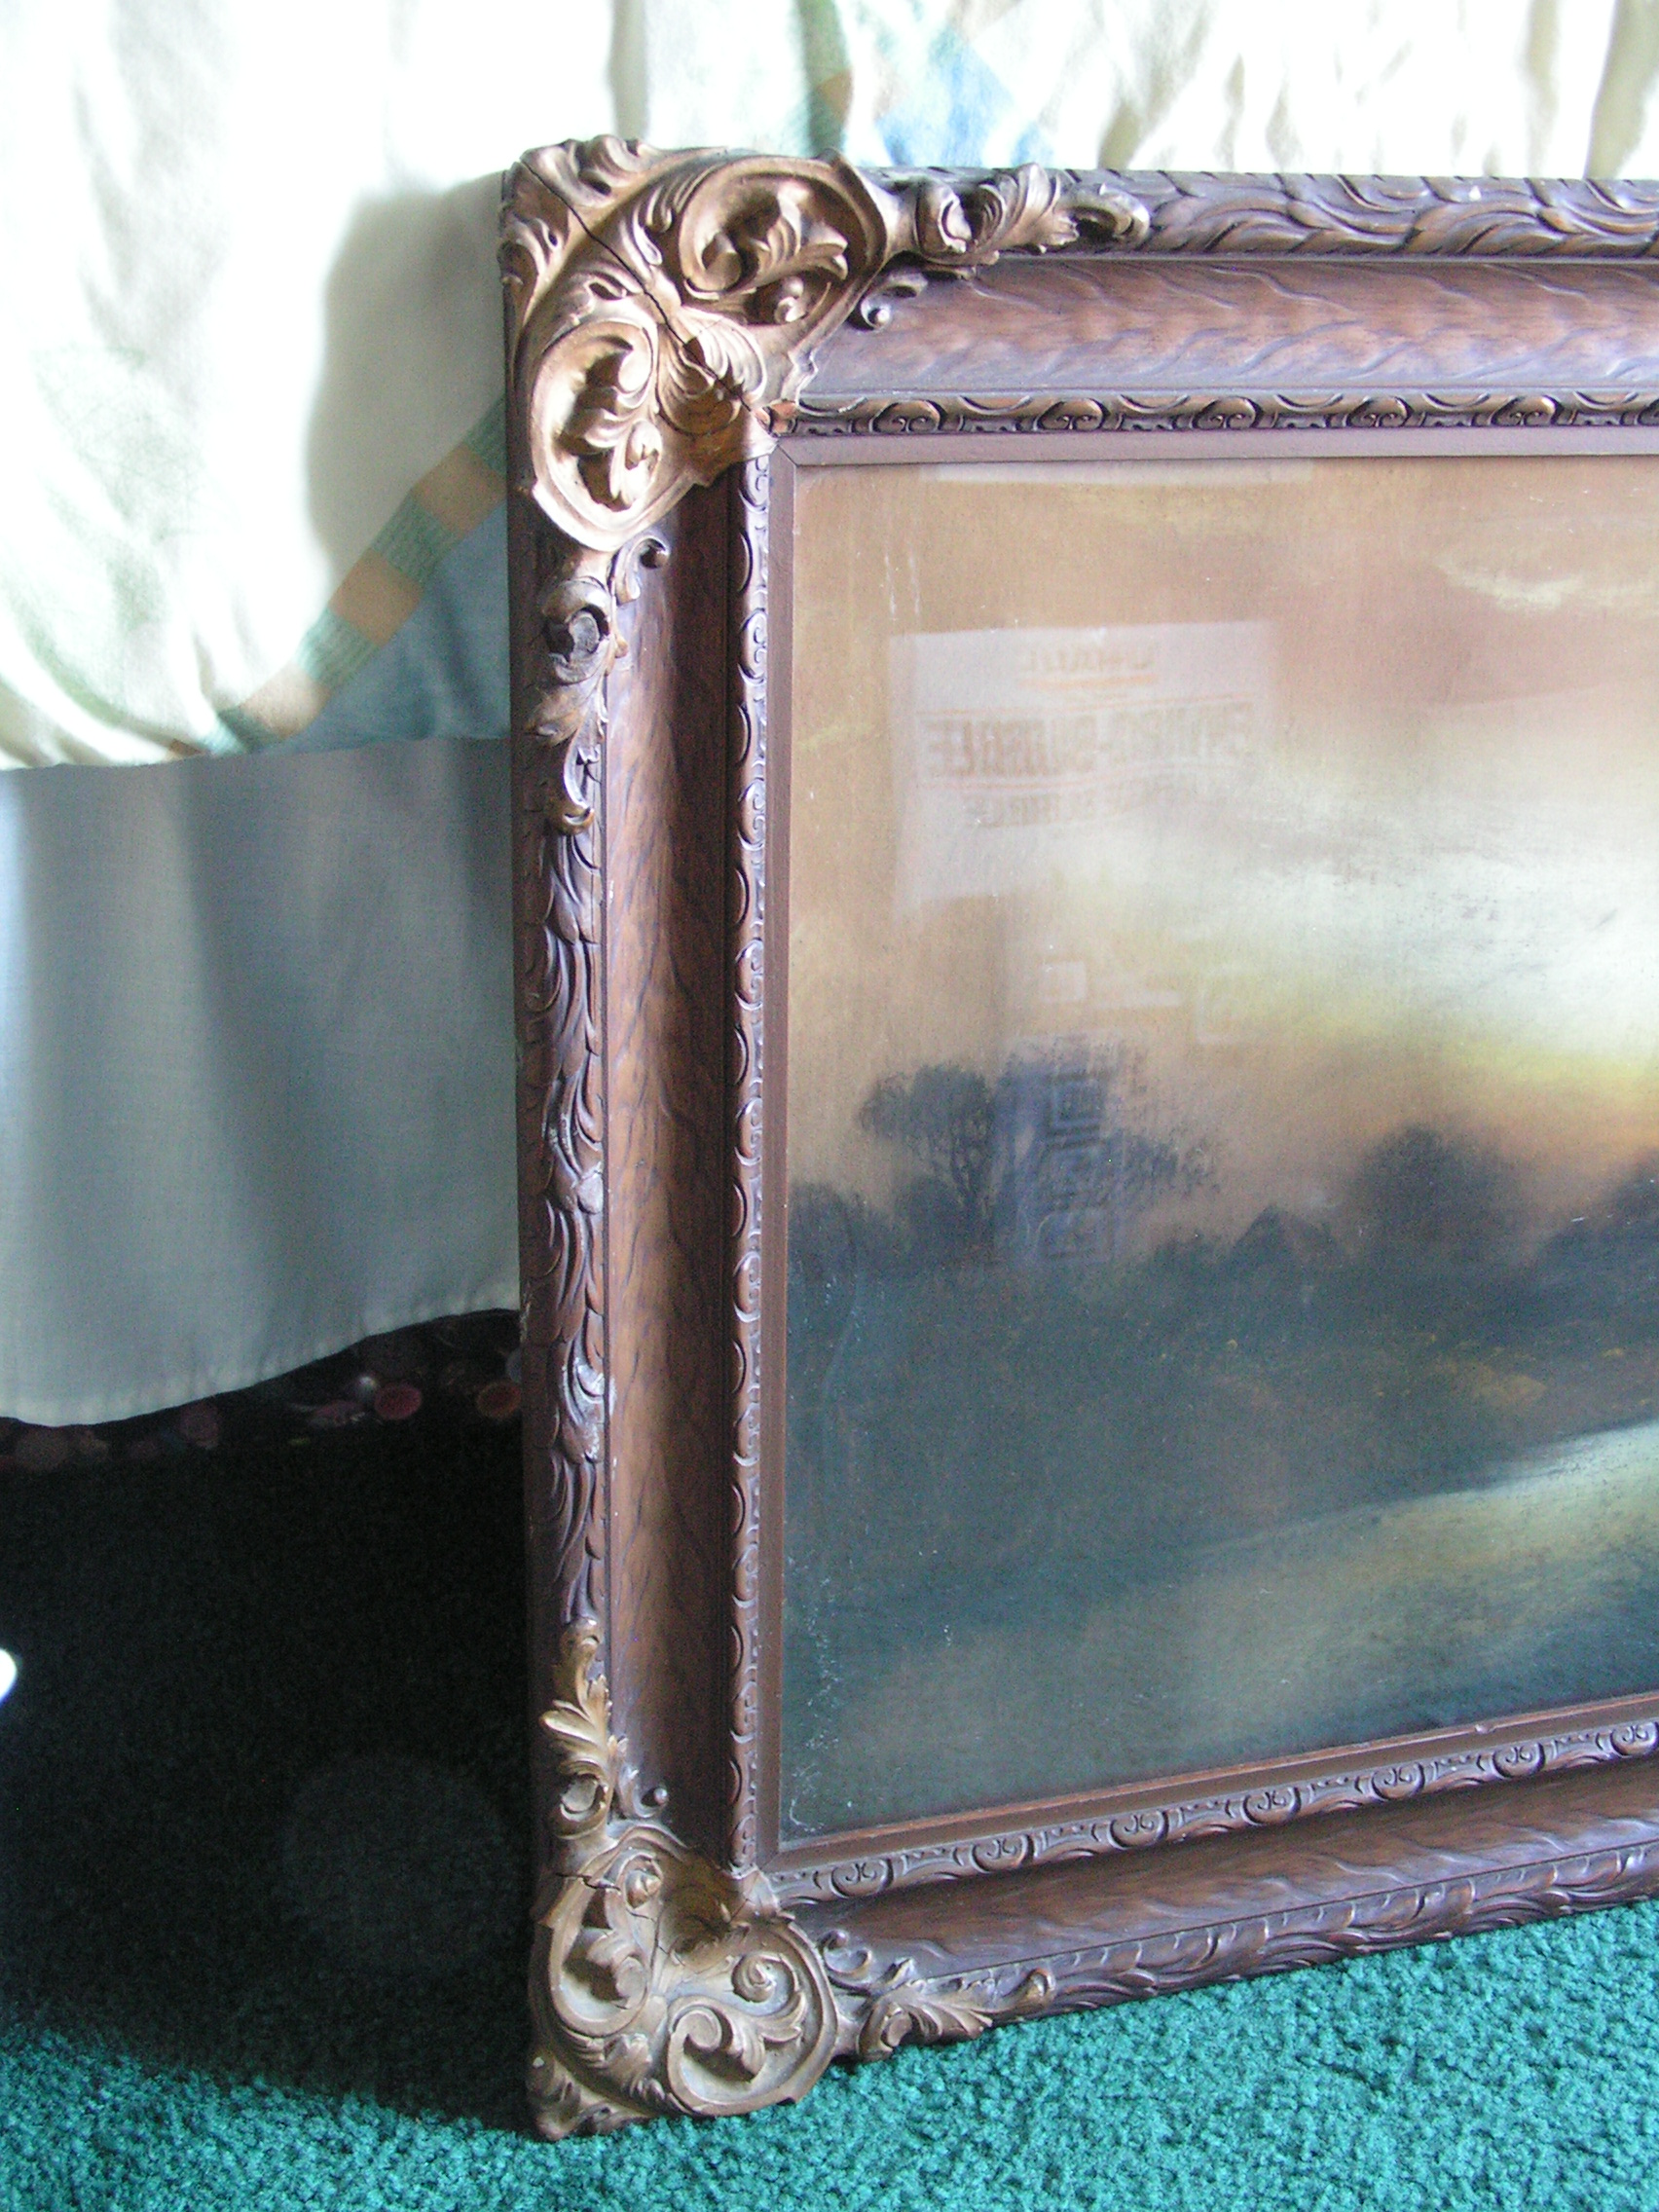 antique charcoal drawing 002.JPG